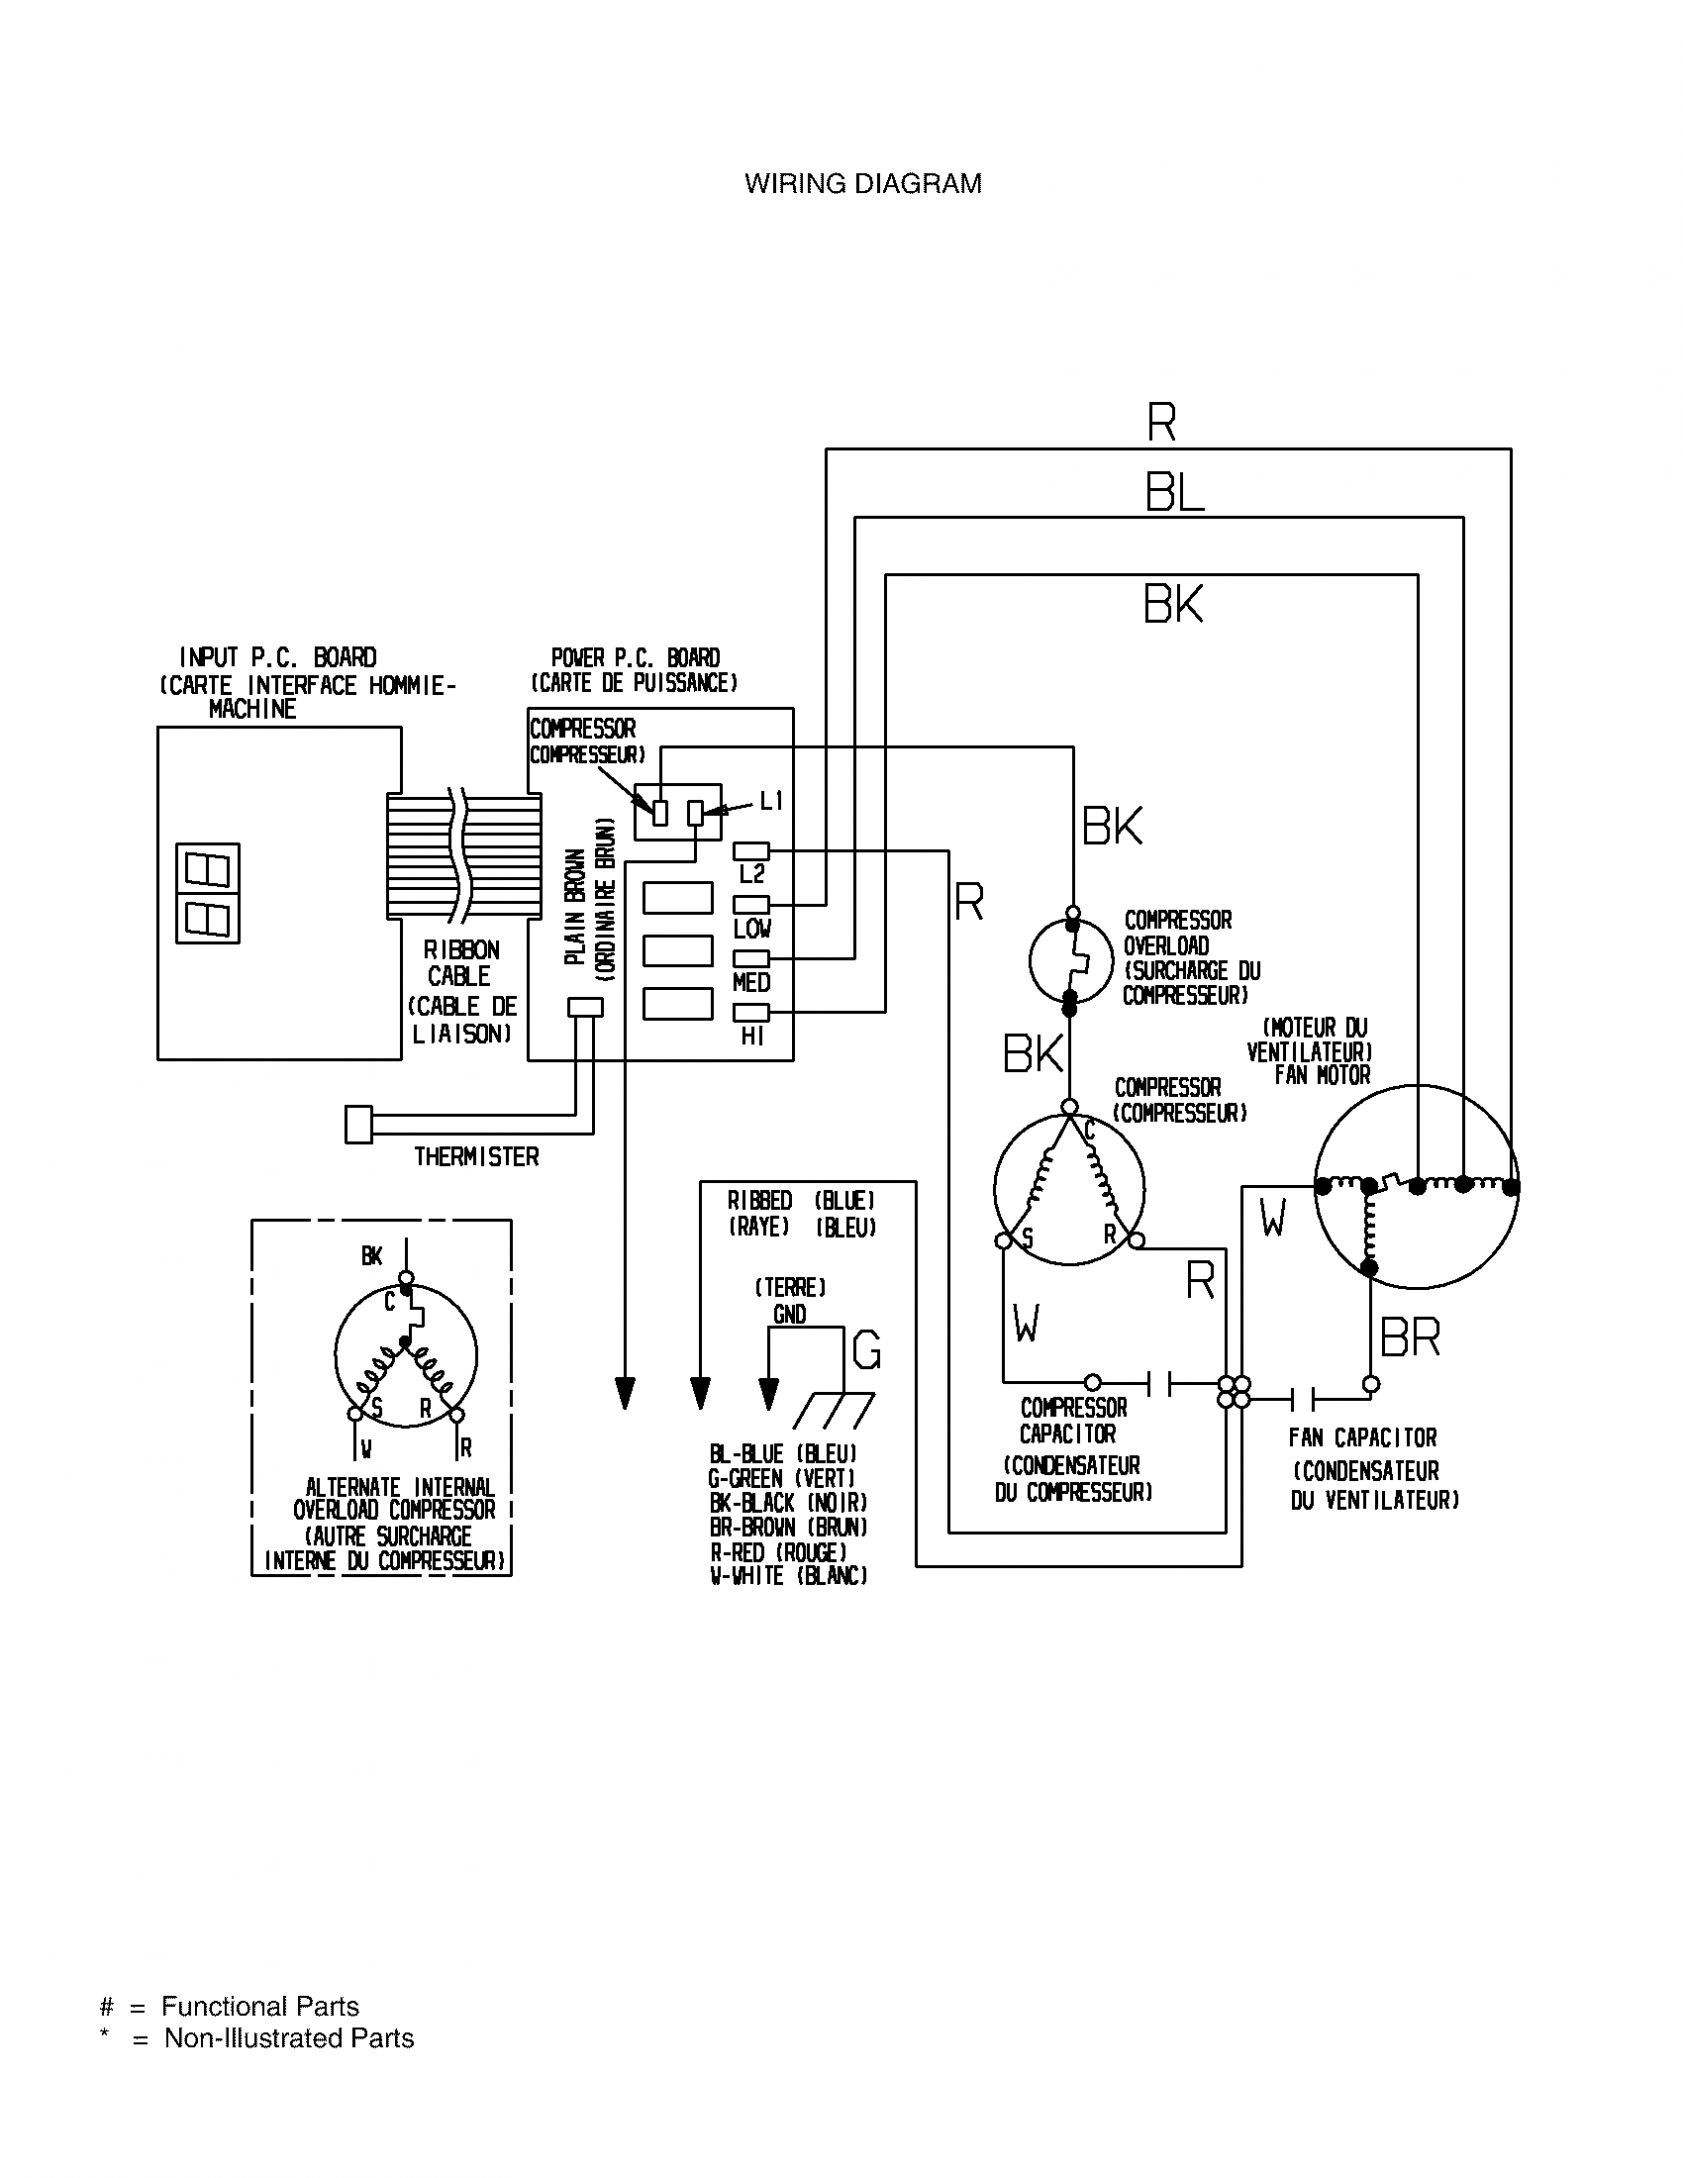 Coleman Rv Air Conditioner Troubleshooting Manual Guide